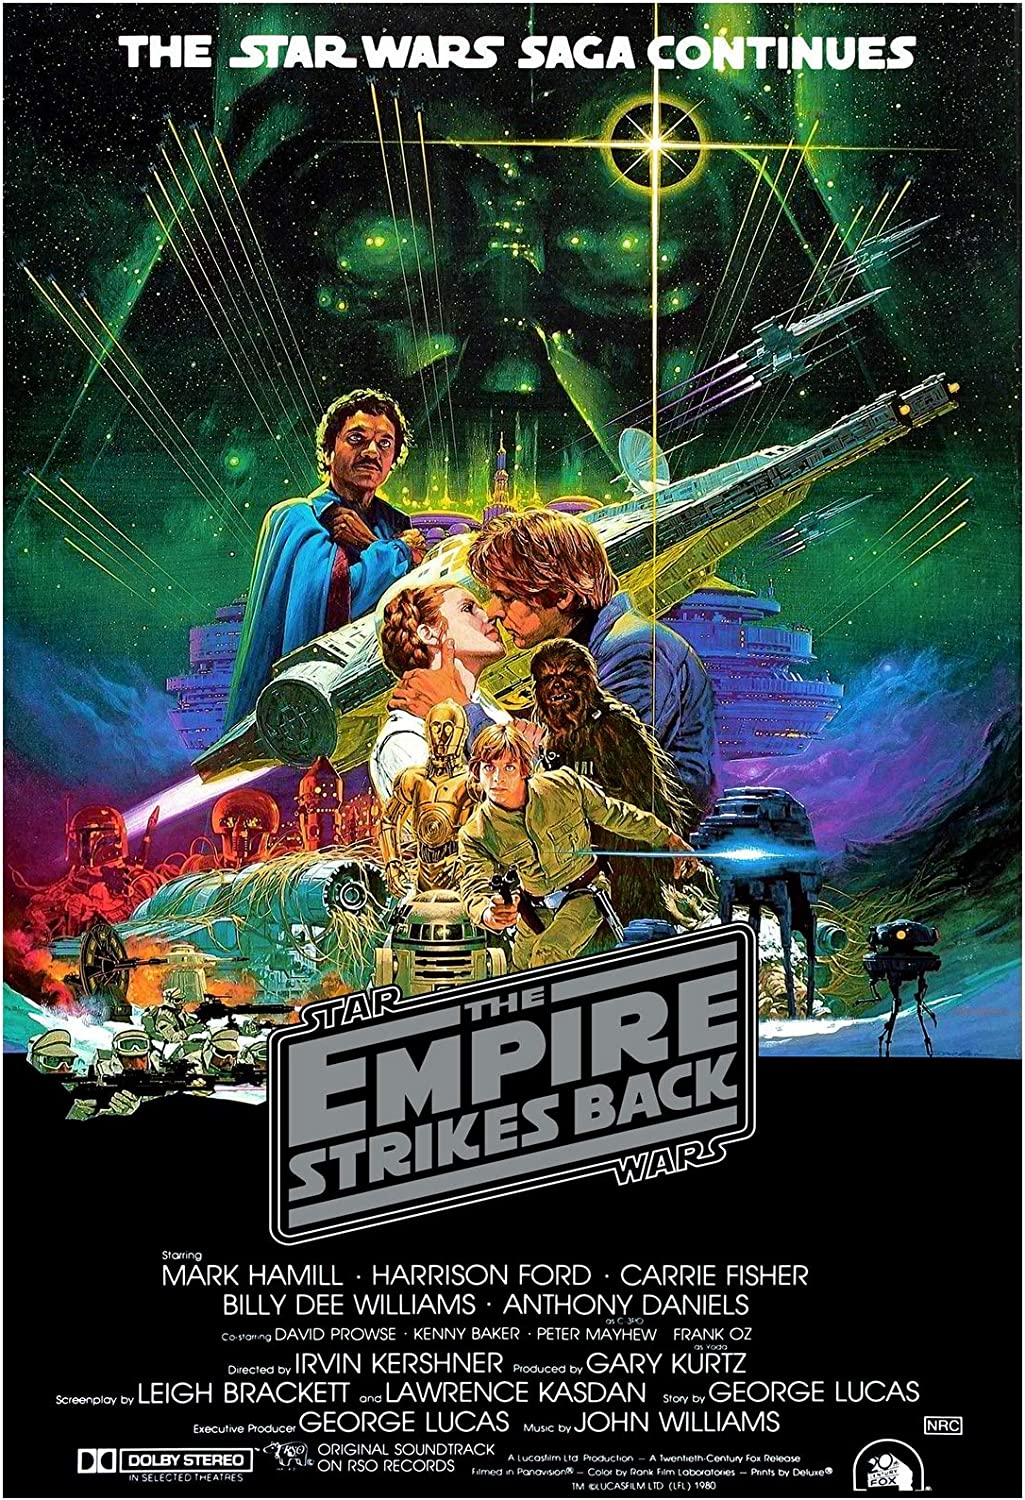 Movie Poster 24x36 Inches 1980 The Empire Strikes Back Star Wars Episode V